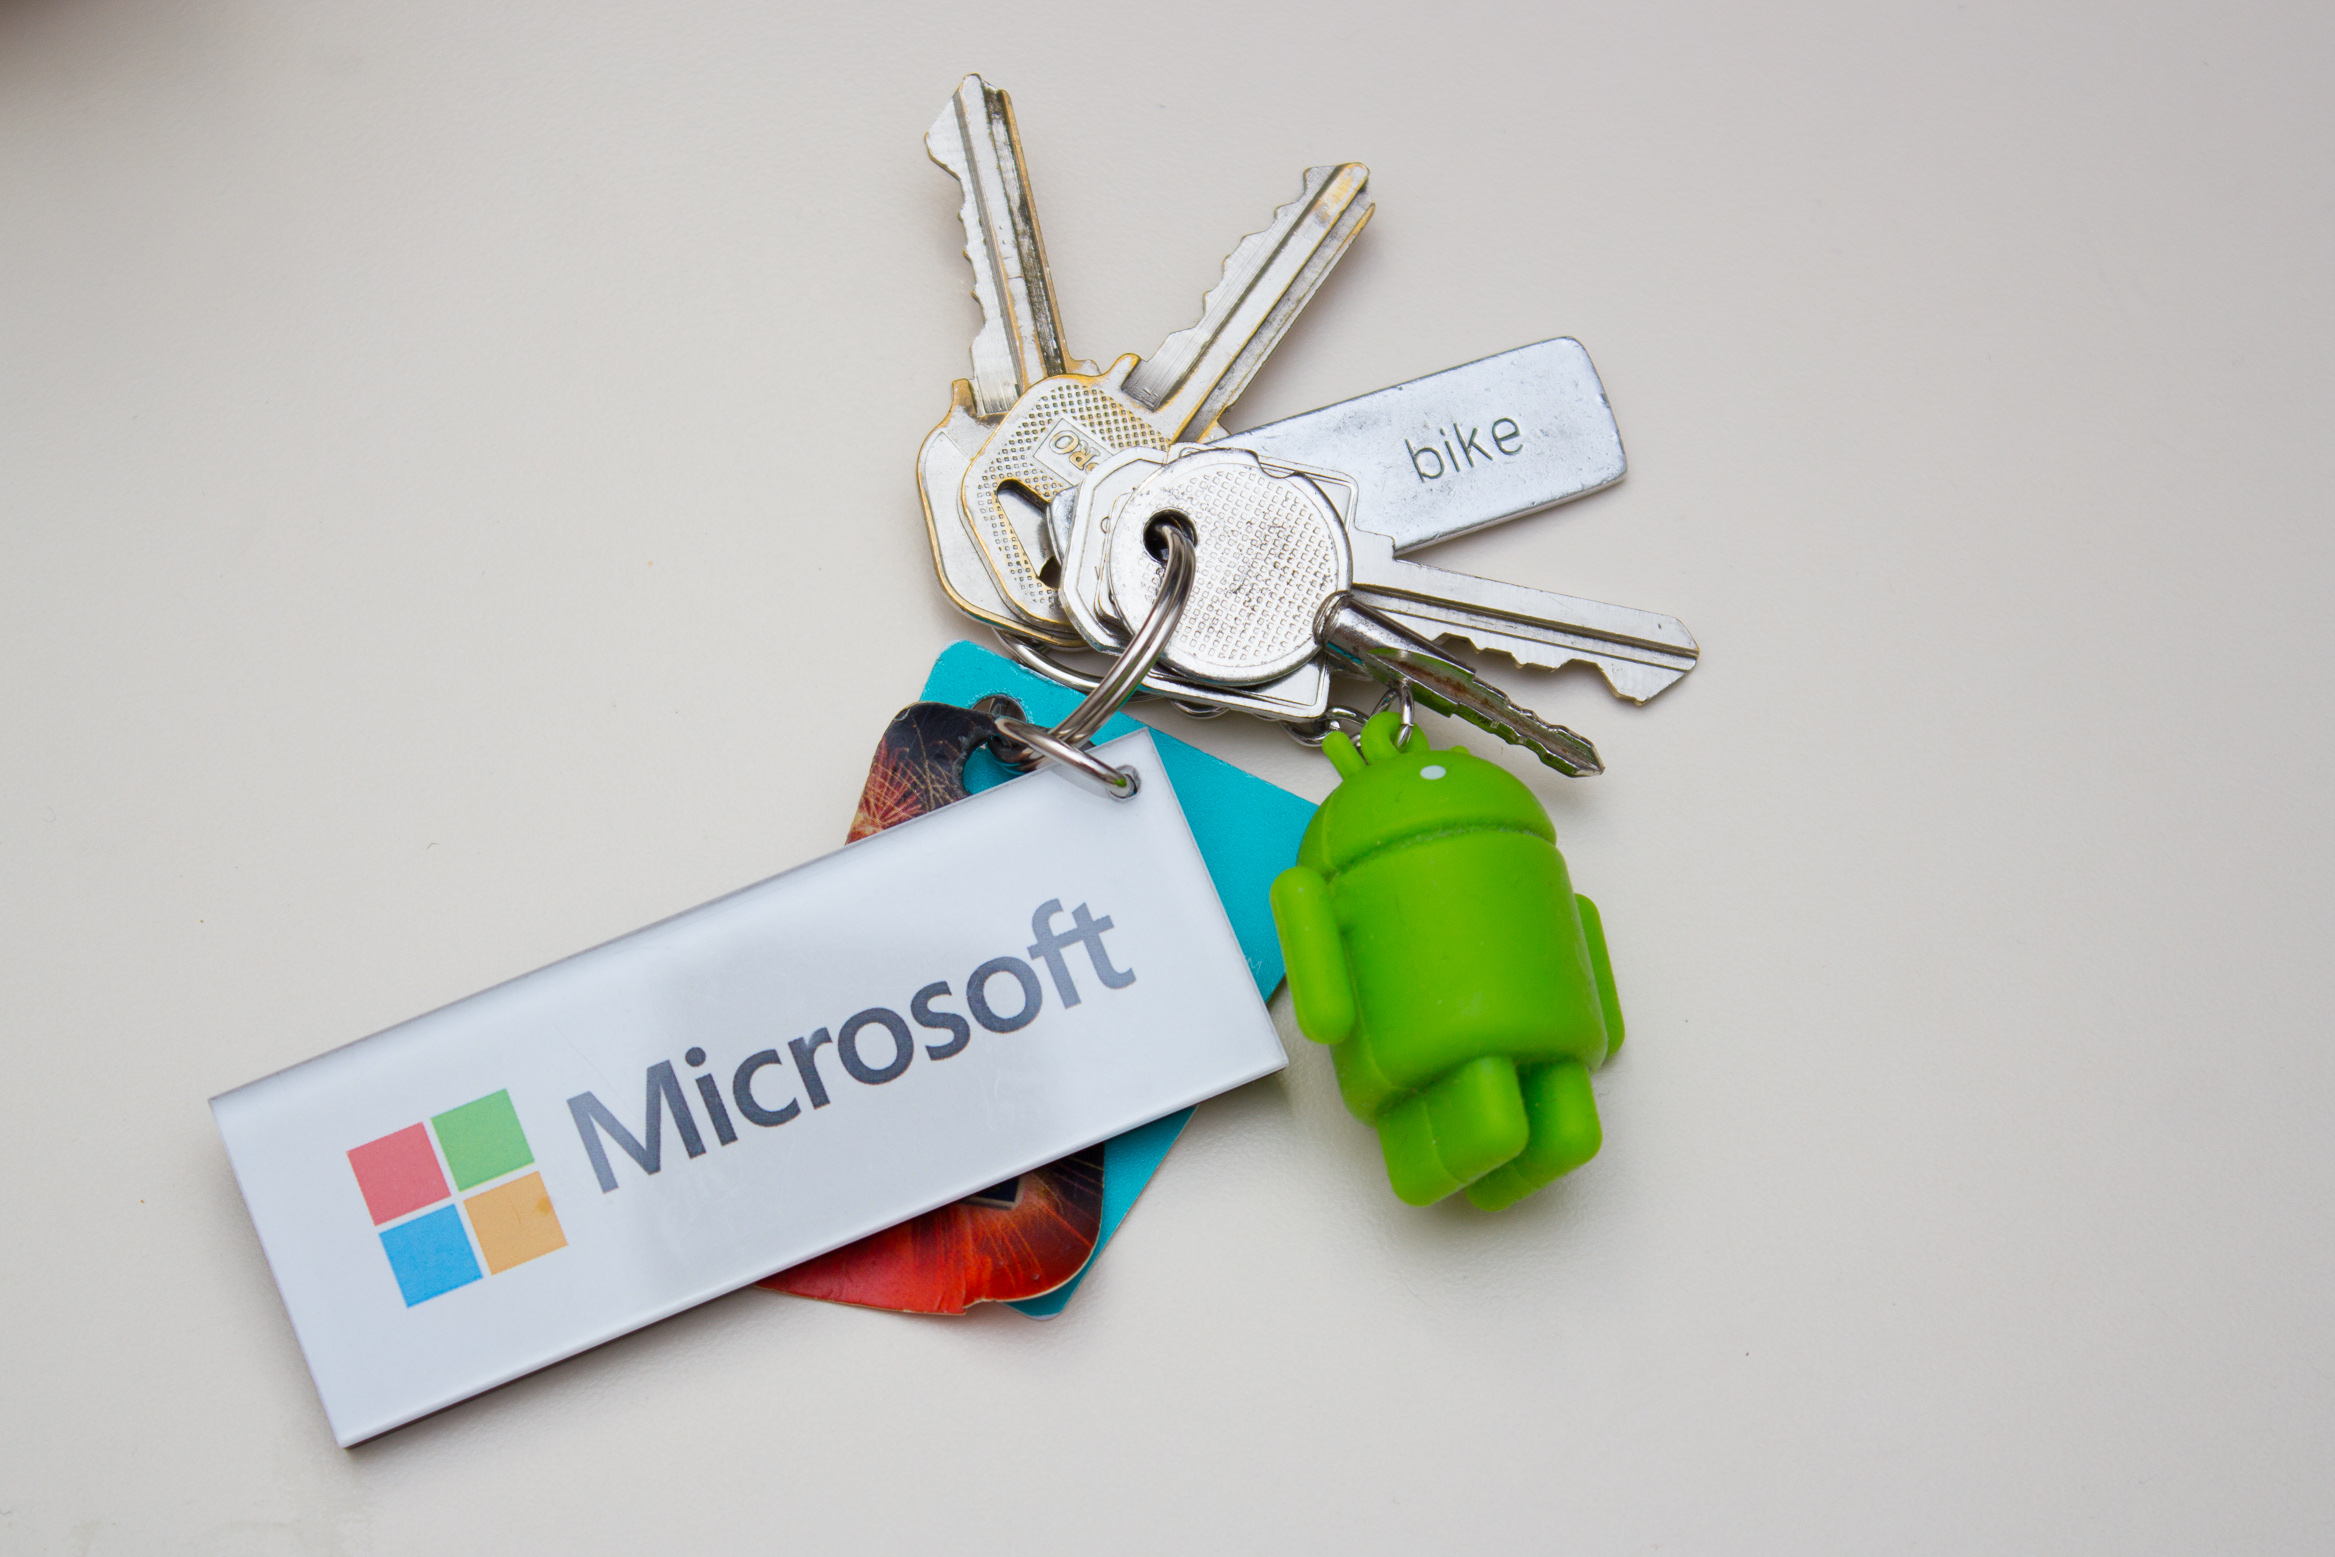 Free Office trial across your devices